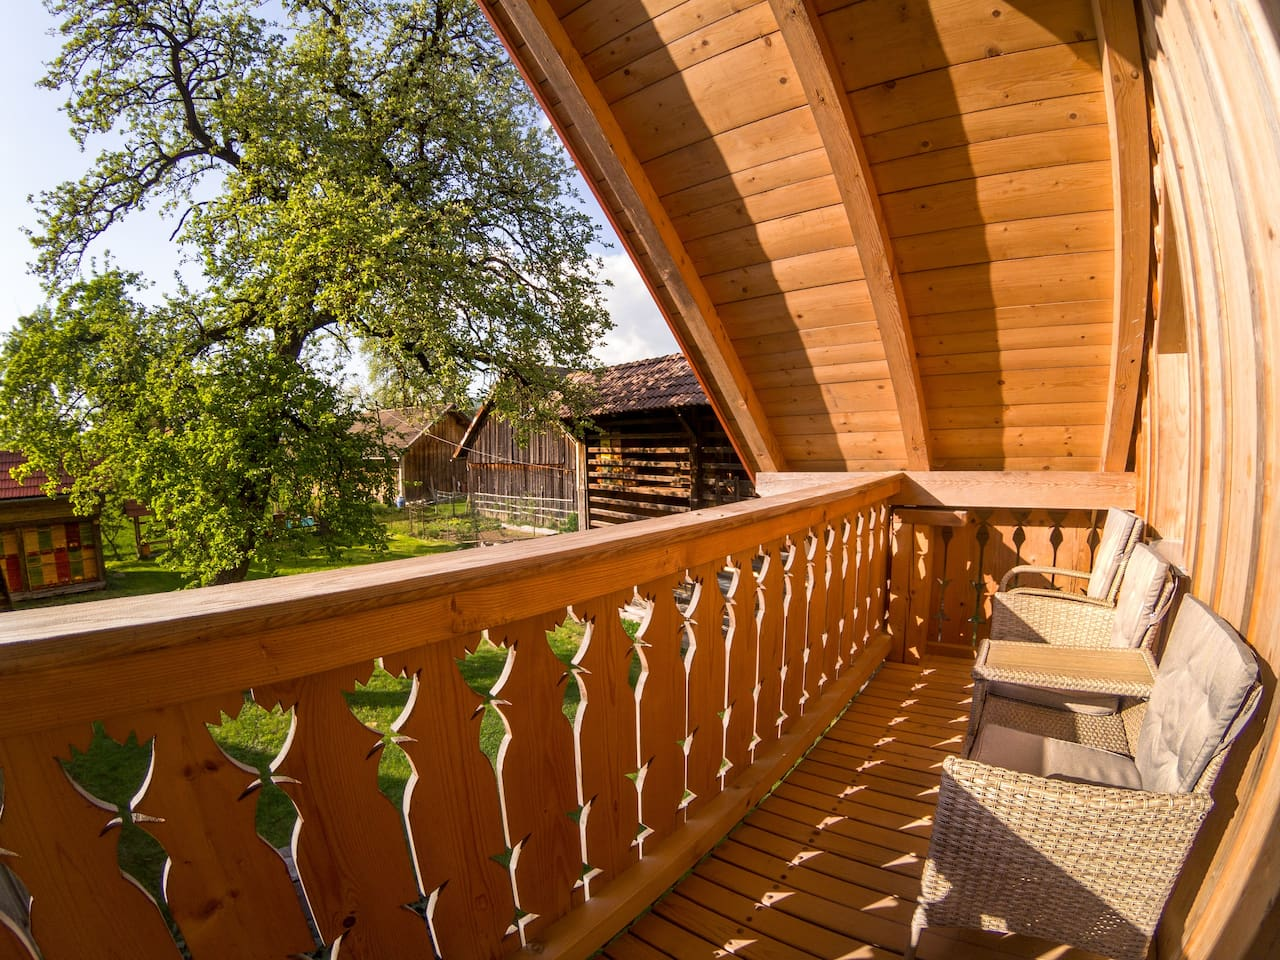 Enjoy morning coffee with views of the garden from the traditional Slovene balcony.